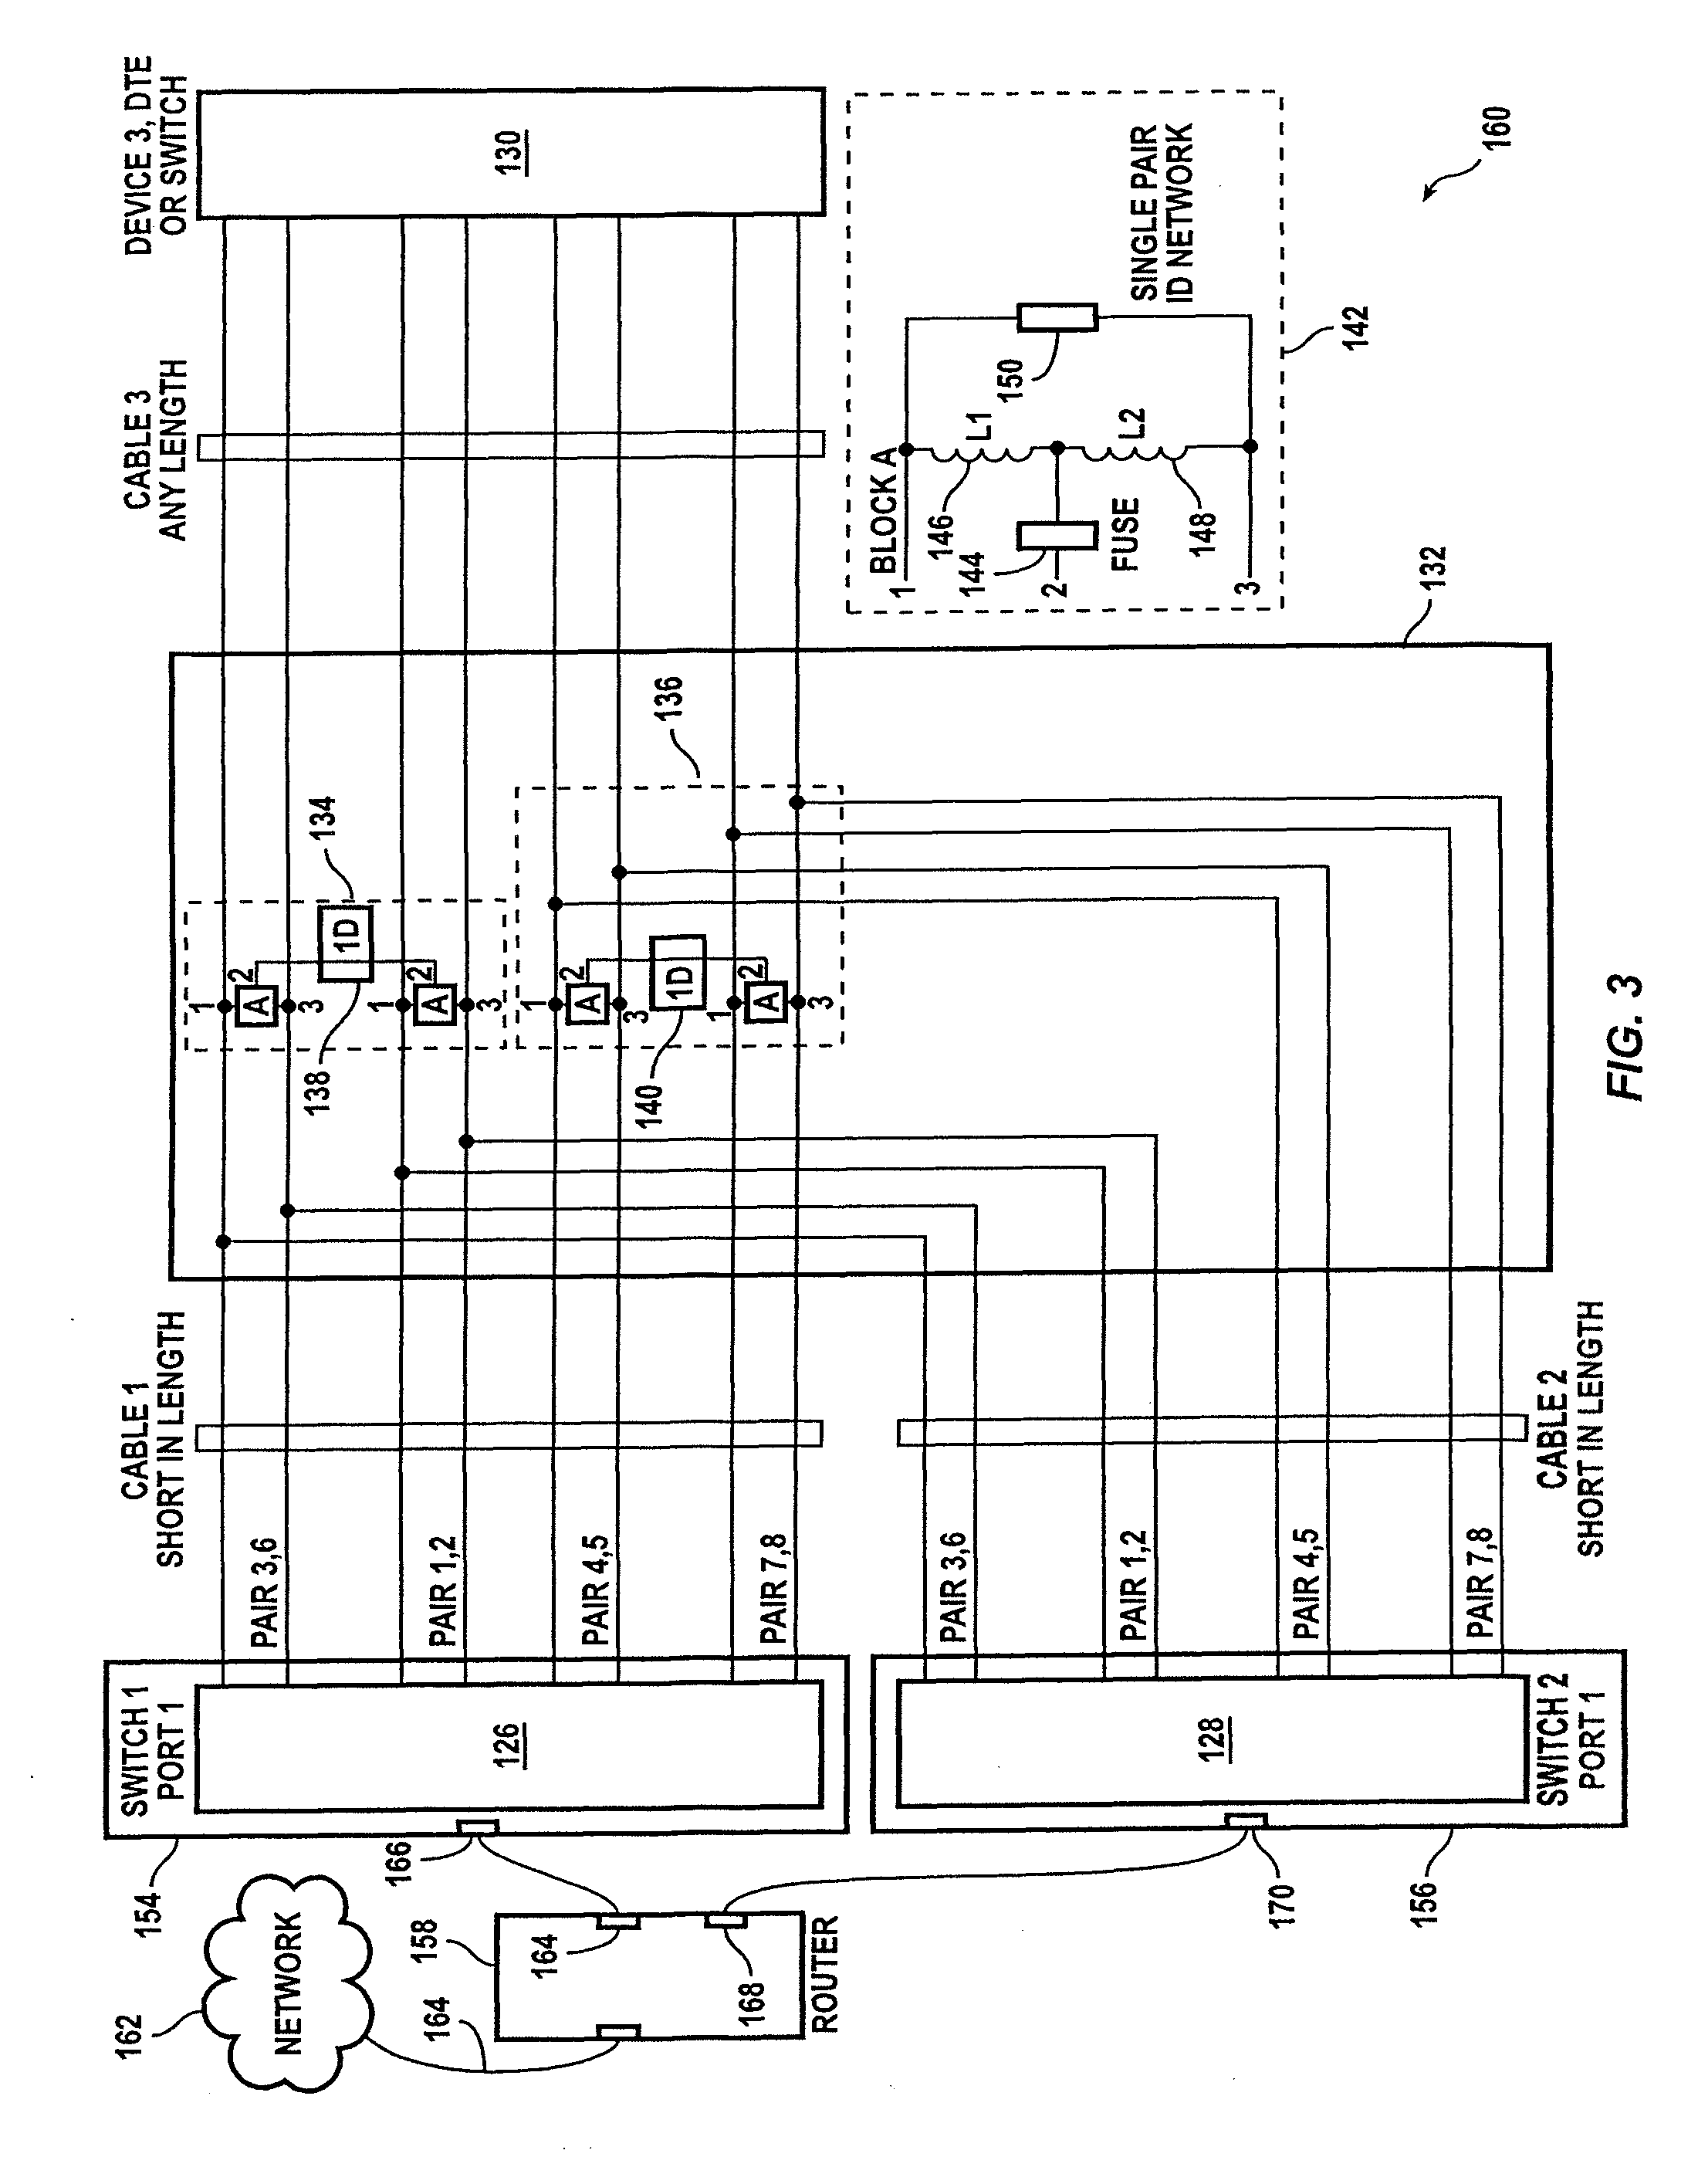 US08386832 20130226 D00005 allen bradley powerflex 40 wiring diagram download remote powerflex 40 wiring diagram at creativeand.co